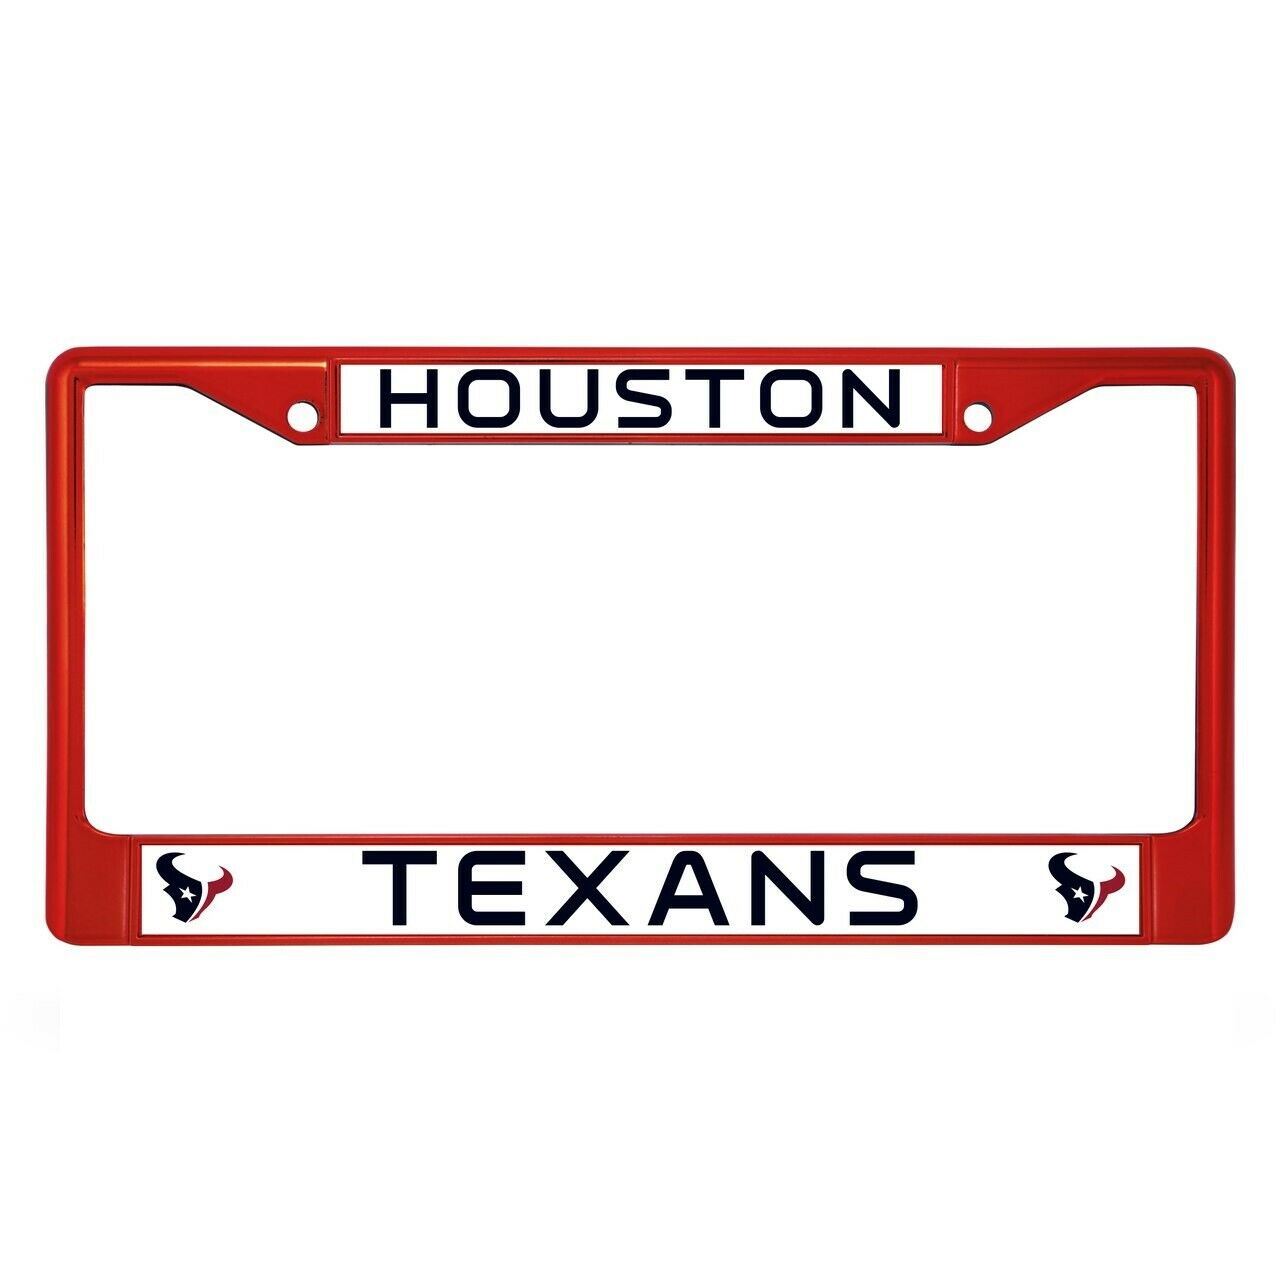 Houston Texans Red Colored Chrome Metal License Plate Frame